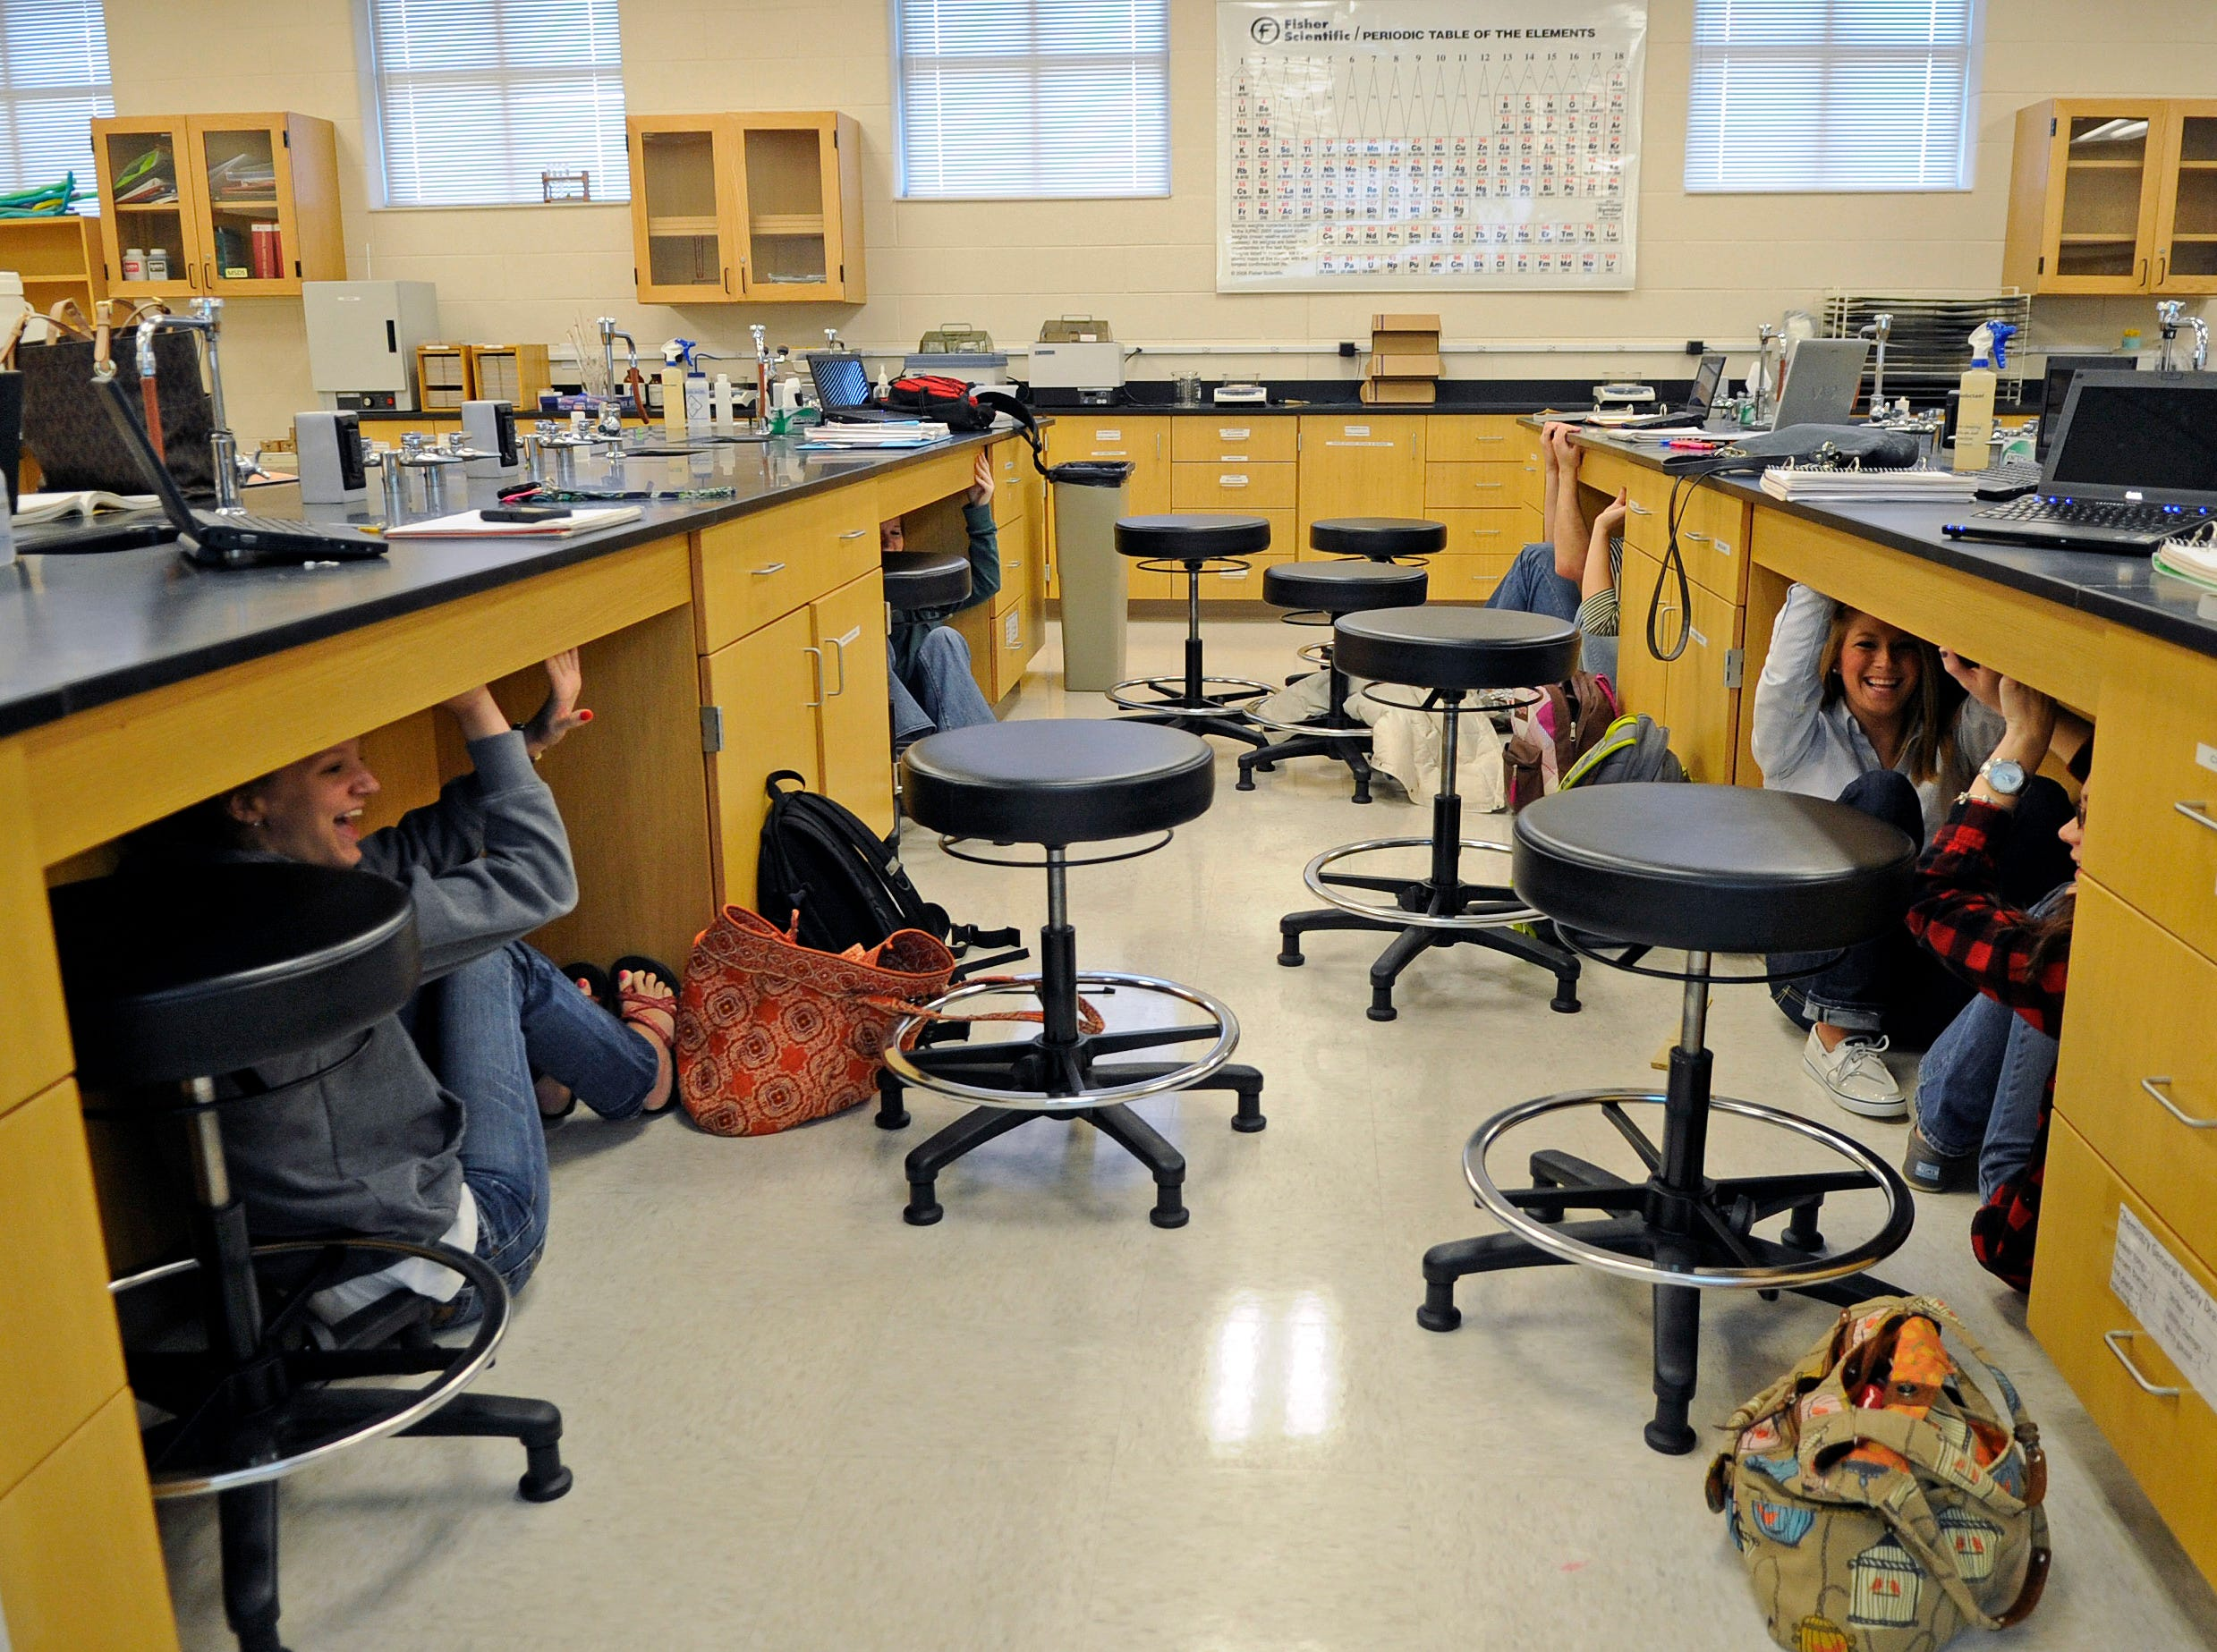 Kyla McClellan, left, Lara Nuchols and Hillary Wilson, right, participate in the Great Central U.S. ShakeOut earthquake drill during geolog class at Pellissippi State, Blount campus, on Tuesday, Feb. 7, 2012.  The drill, partially campaigned by the Tennessee Emergency Management Agency, is held across eleven states. (AMY SMOTHERMAN BURGESS/NEWS SENTINEL)